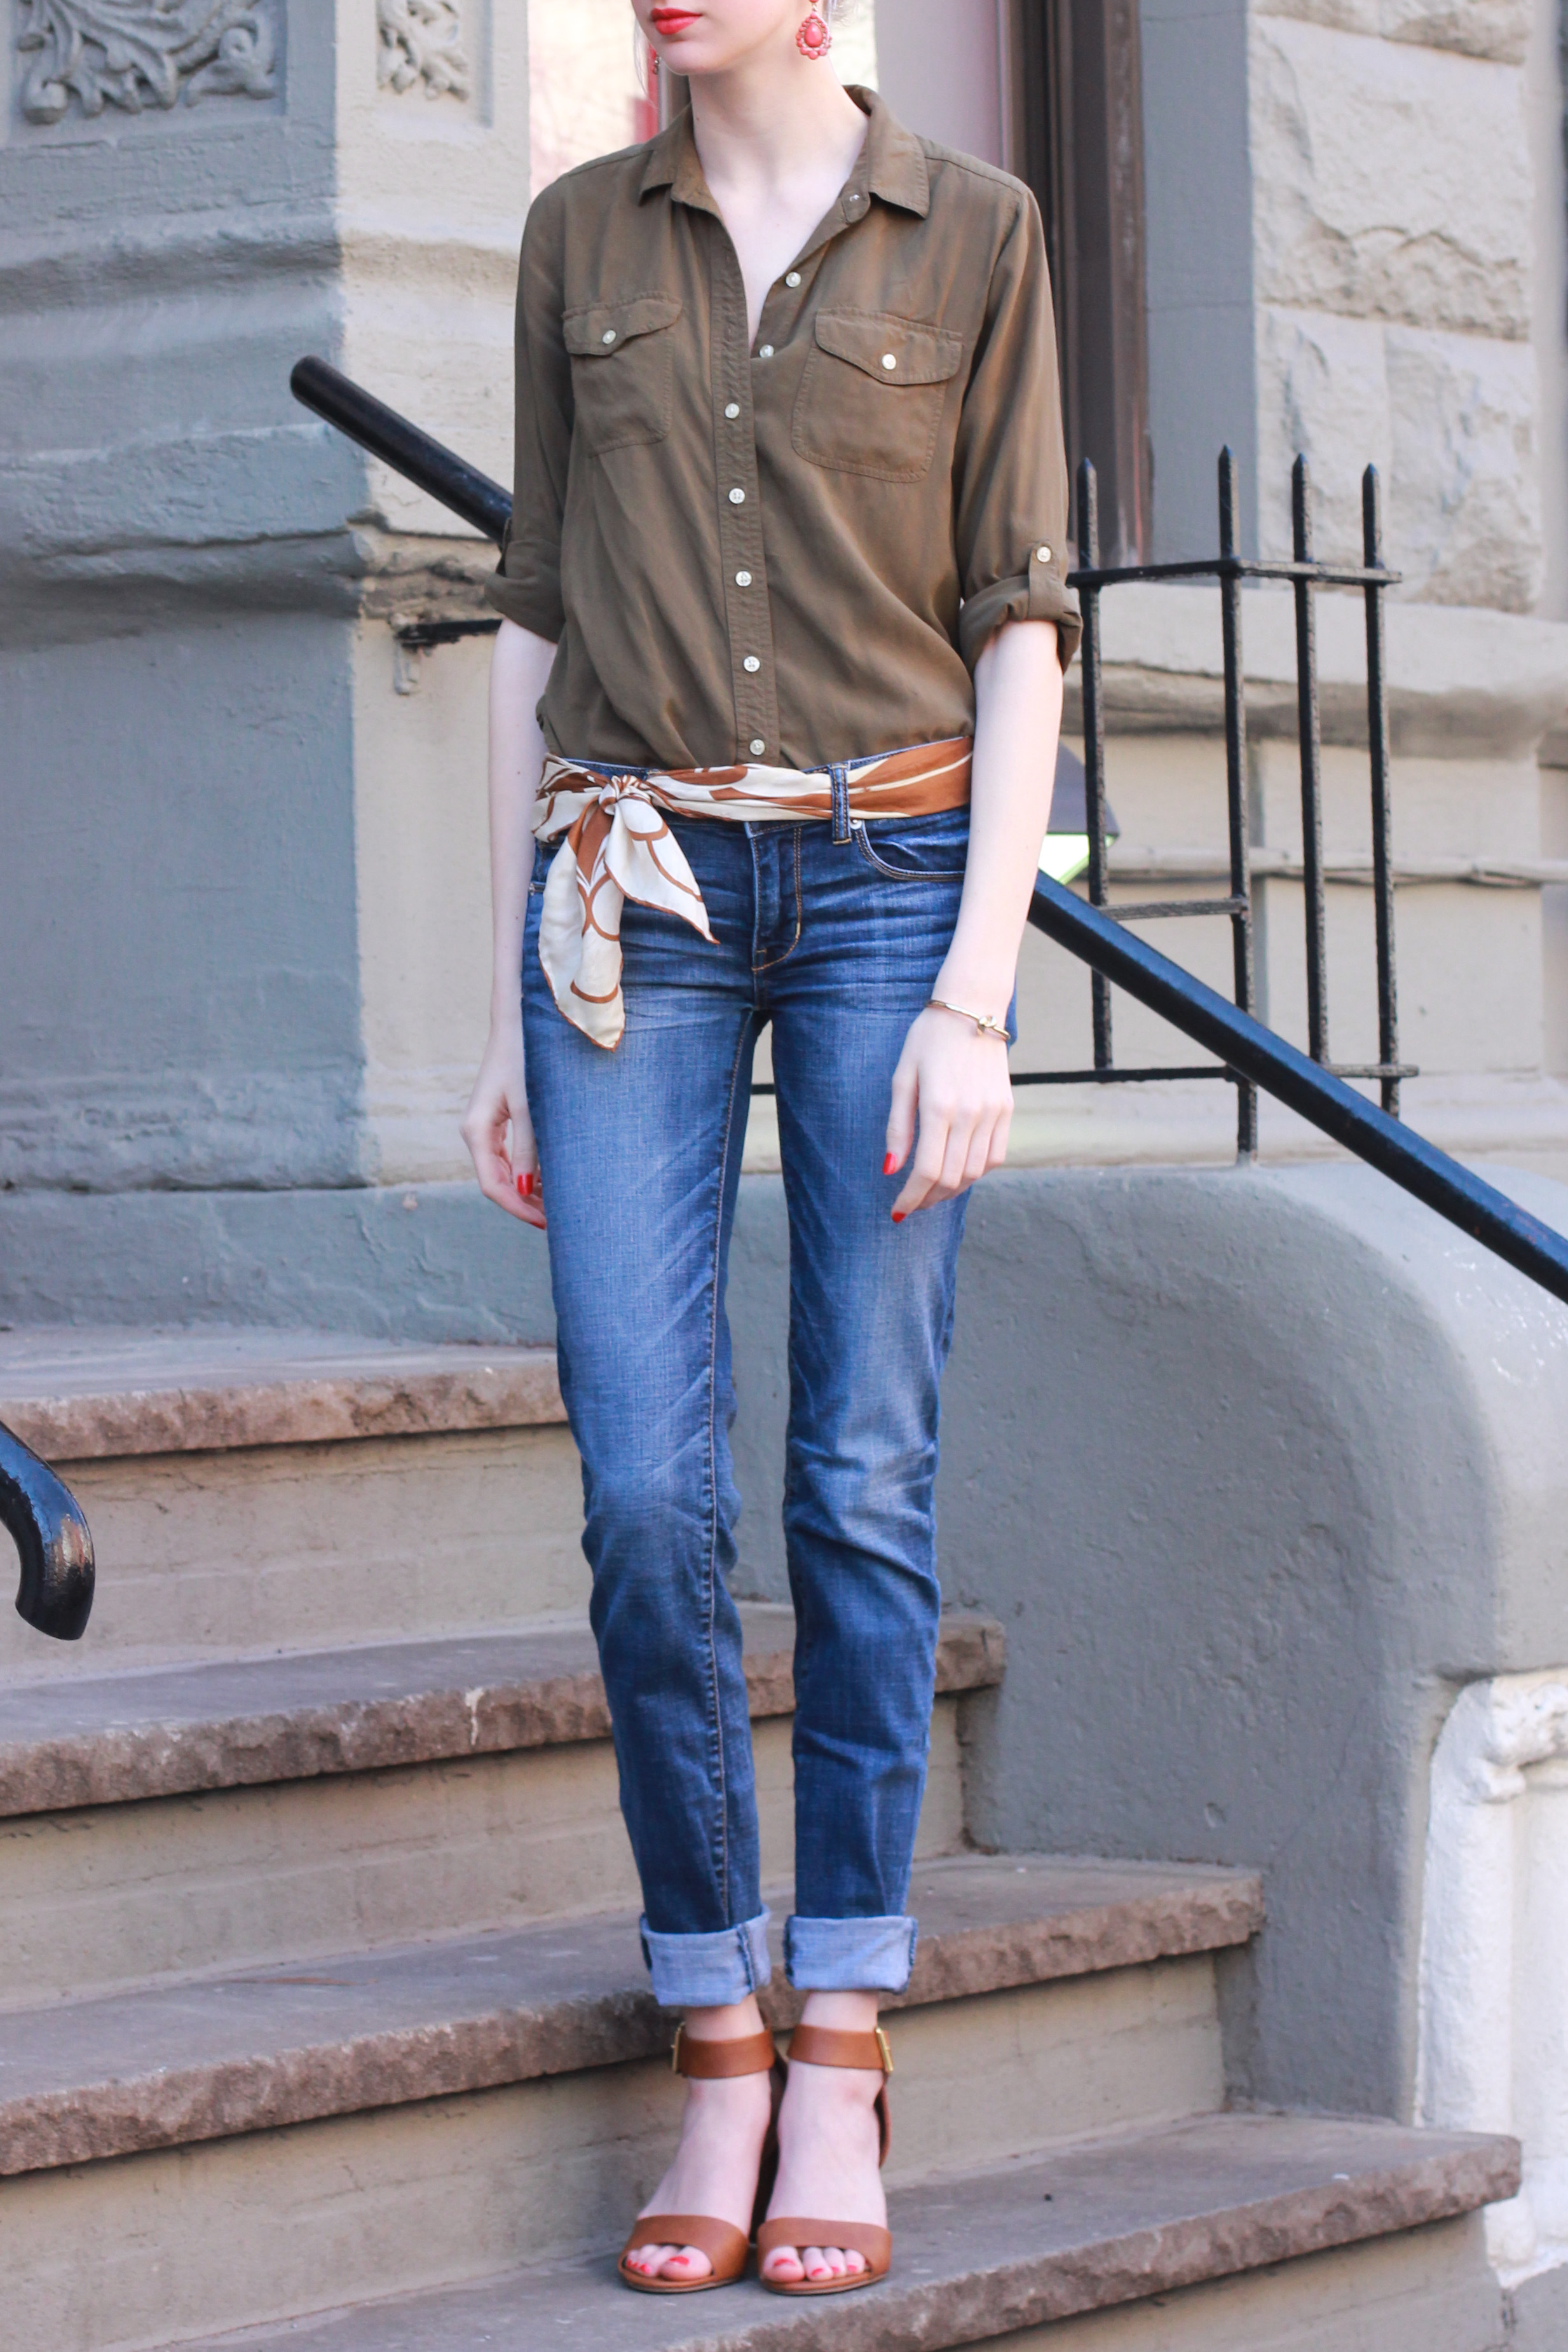 LOFT army green button down, American Eagle jeans, Target merona ankle strap block heel sandals, silk scarf belt, francesas coral earrings, Clinique Color Pop lipstick in poppy pop, Essie nail polish in geranium